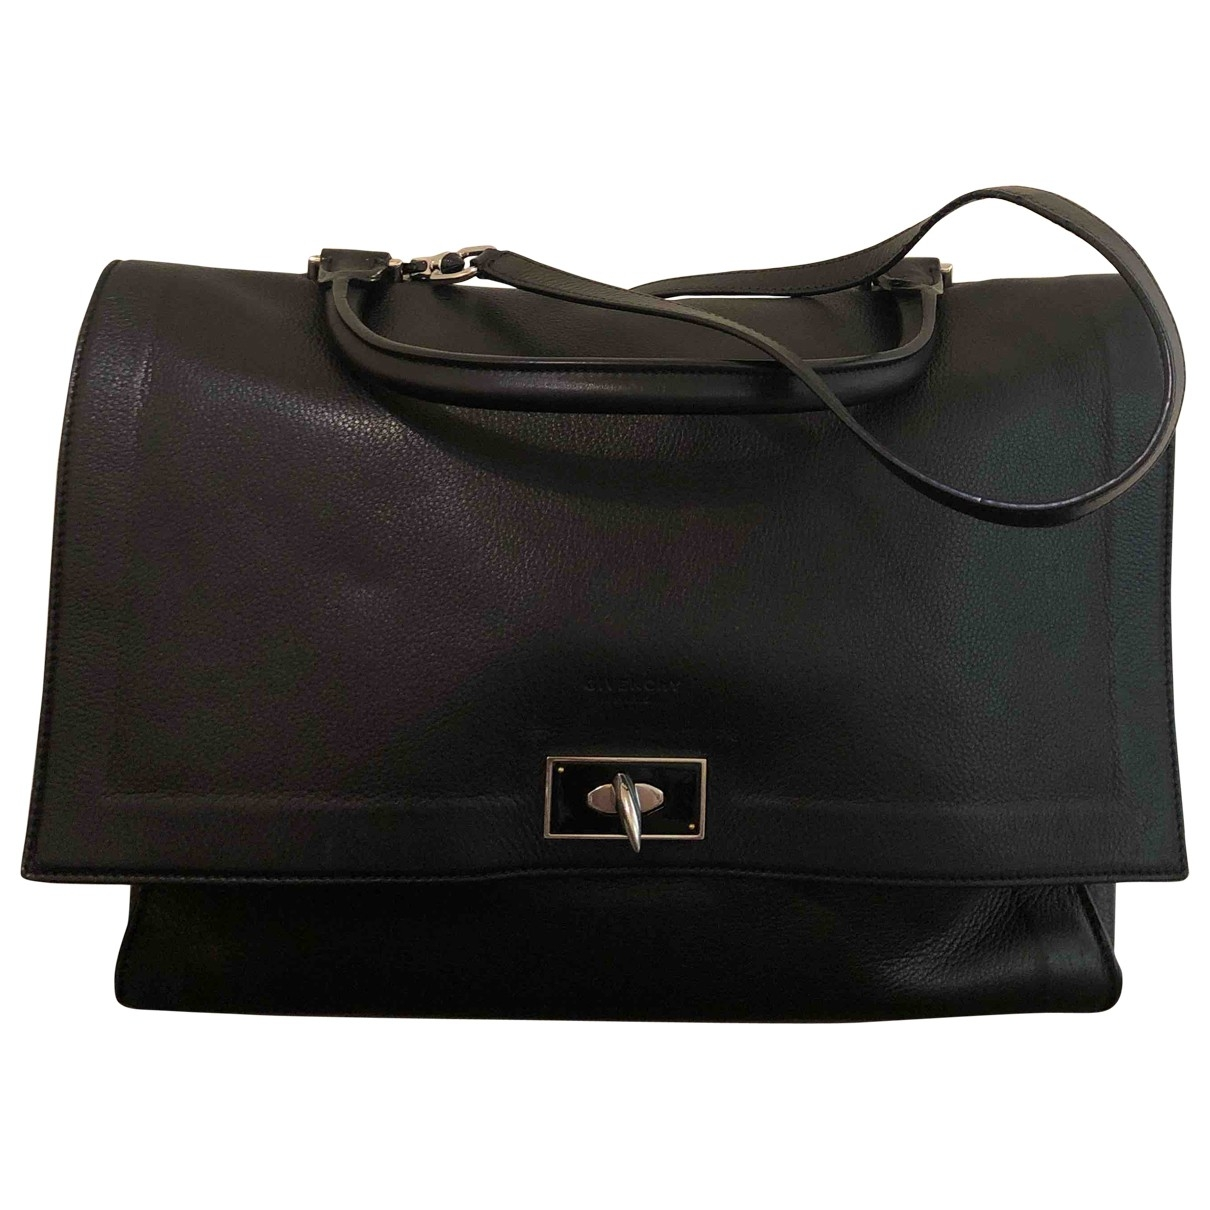 Givenchy Shark Black Leather handbag for Women \N